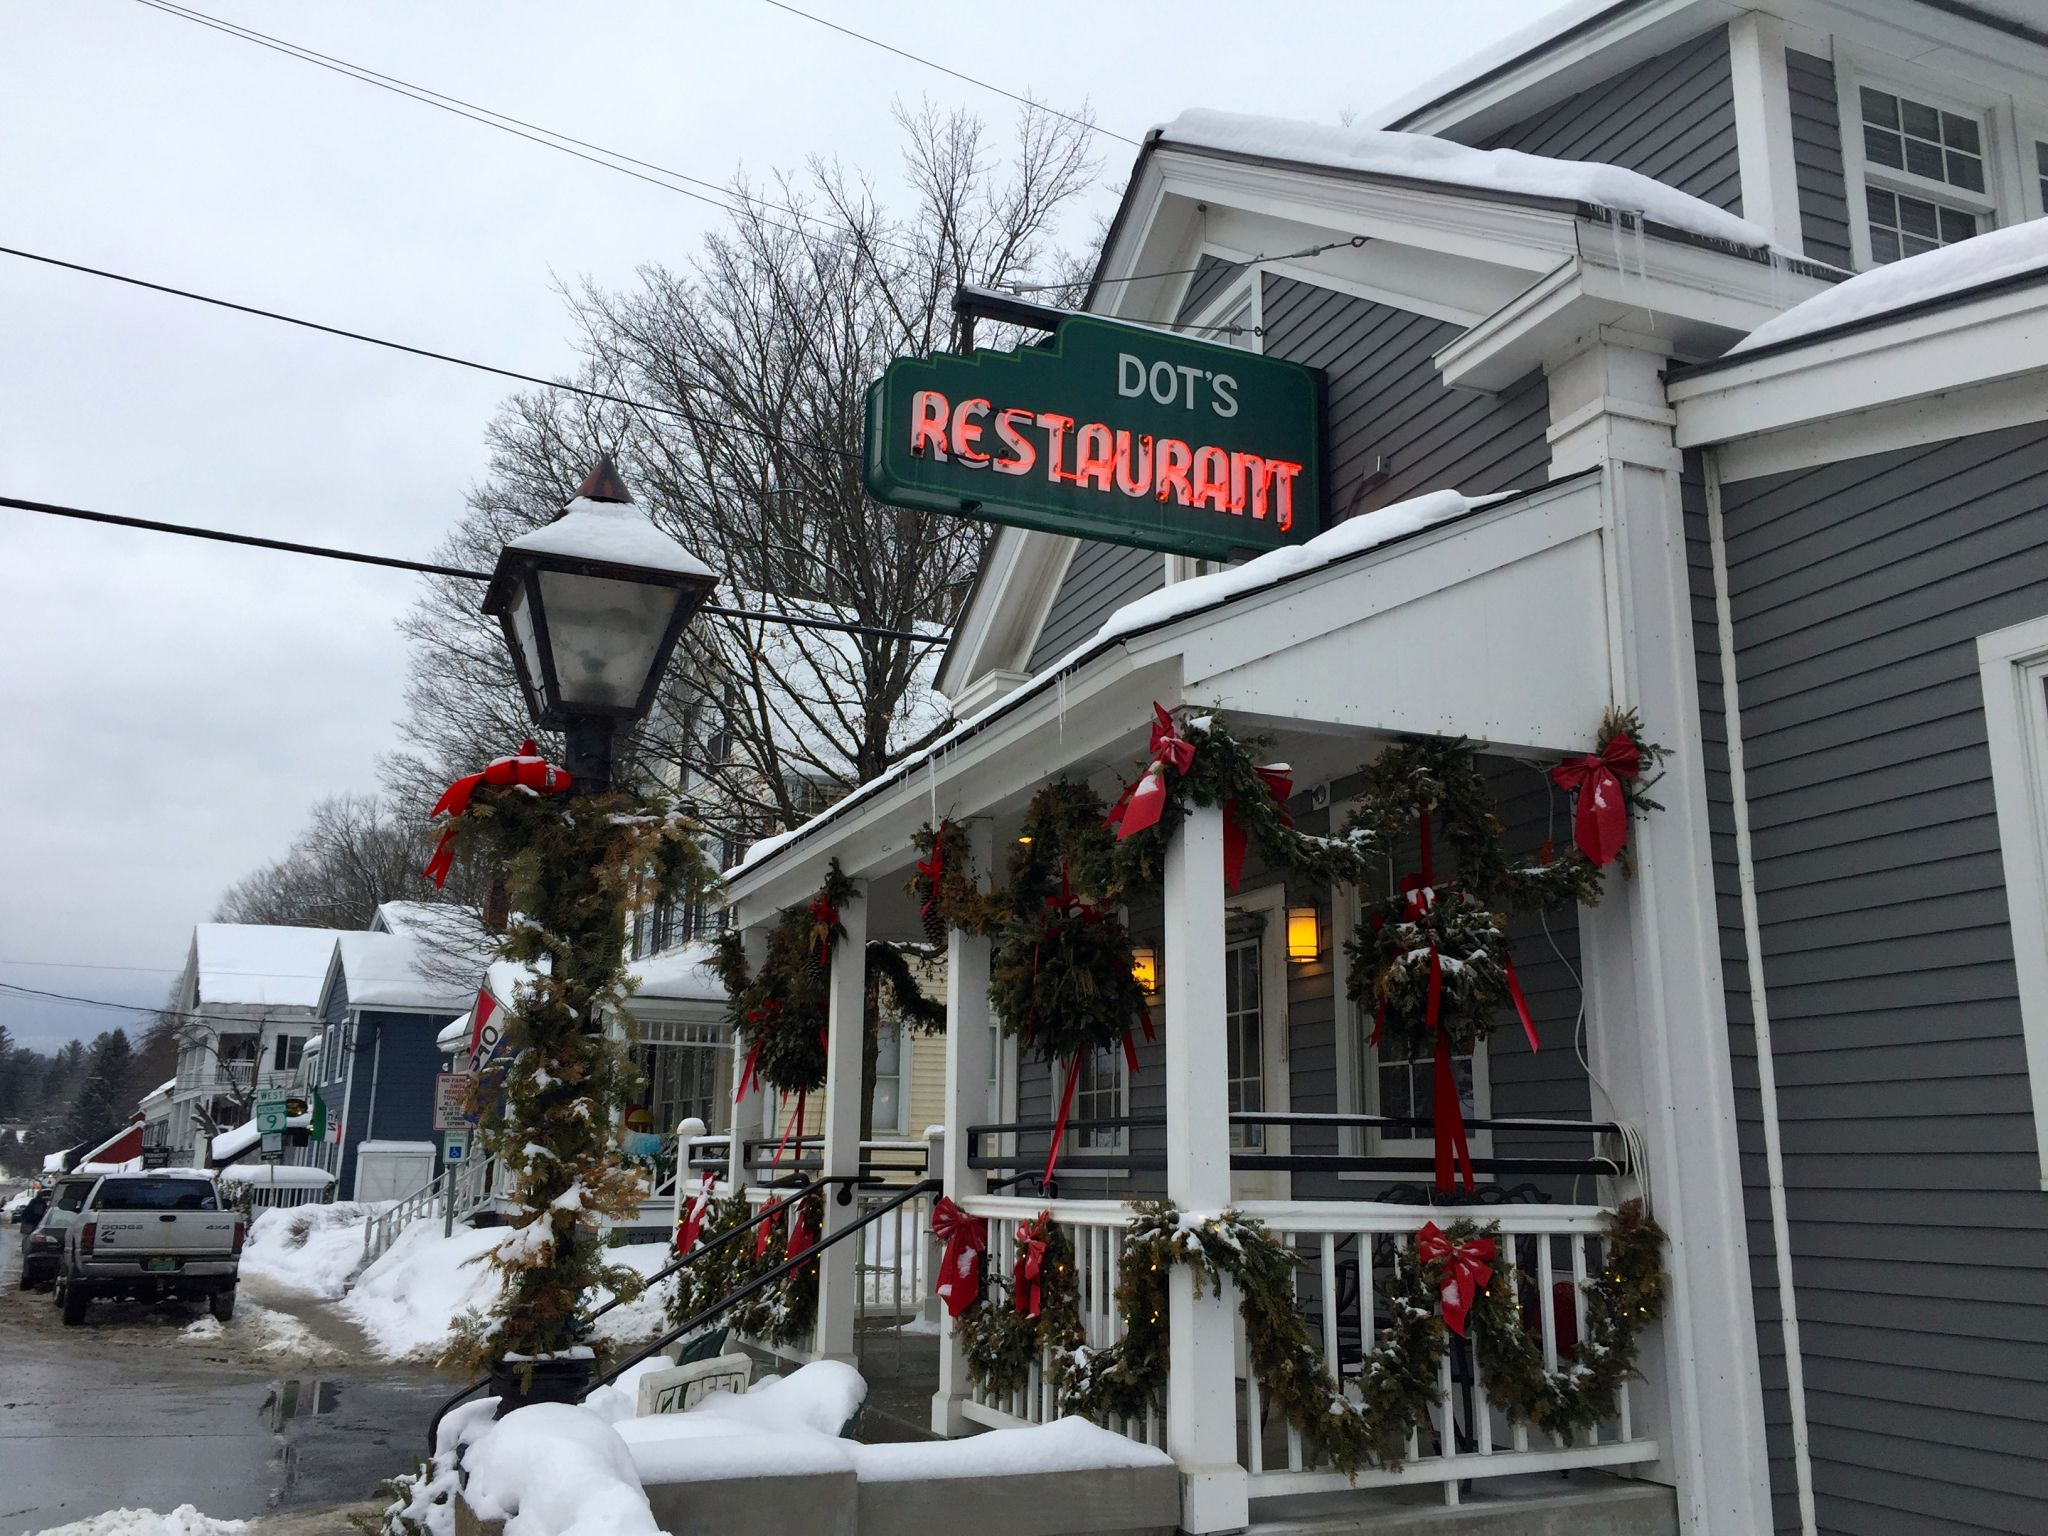 Restaurant with Christmas decor in Wilmington Vermont